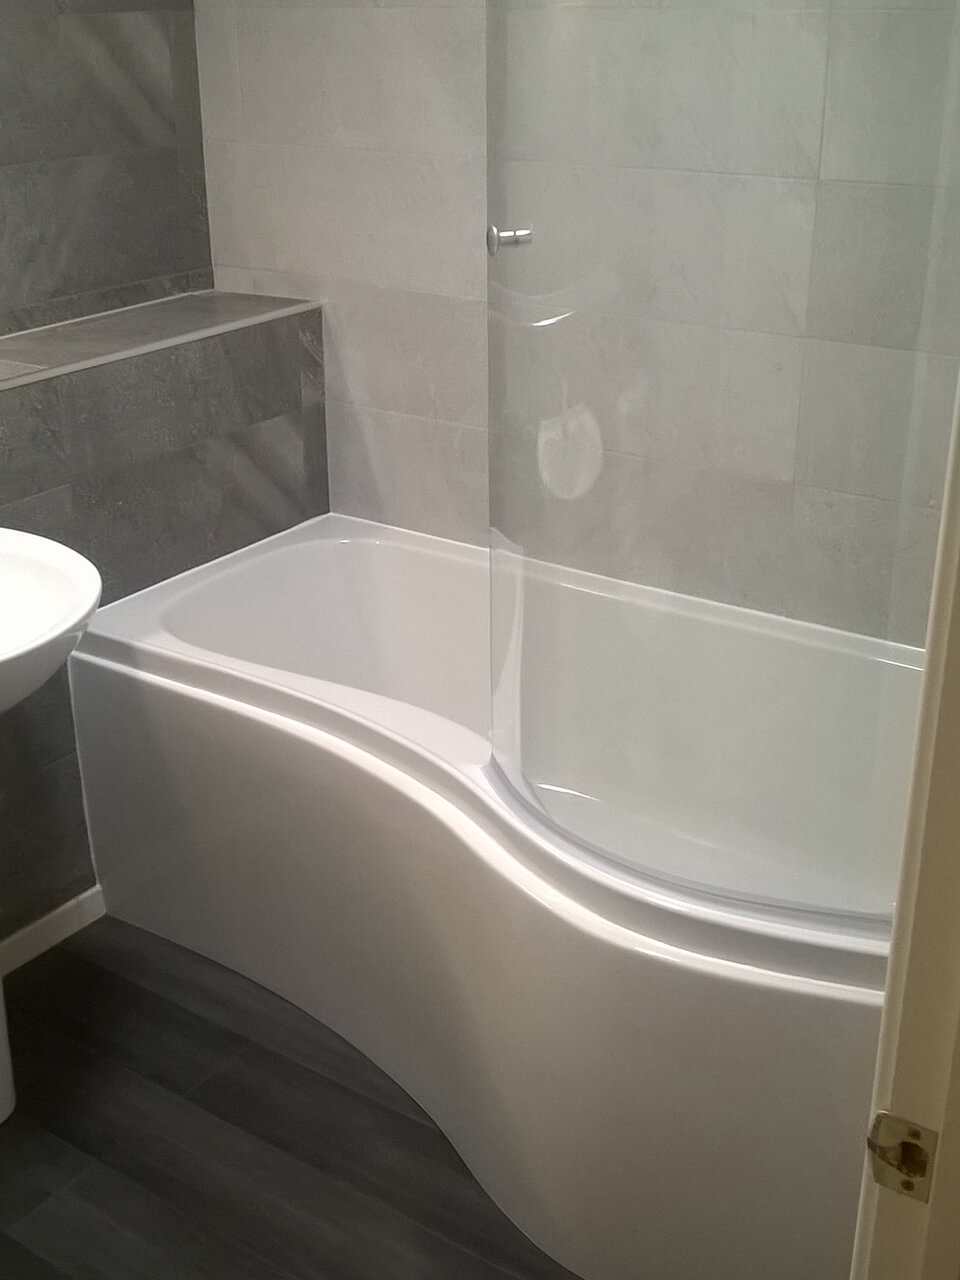 ashmore_plumbing_building_blackpool_bathroom_installation_22